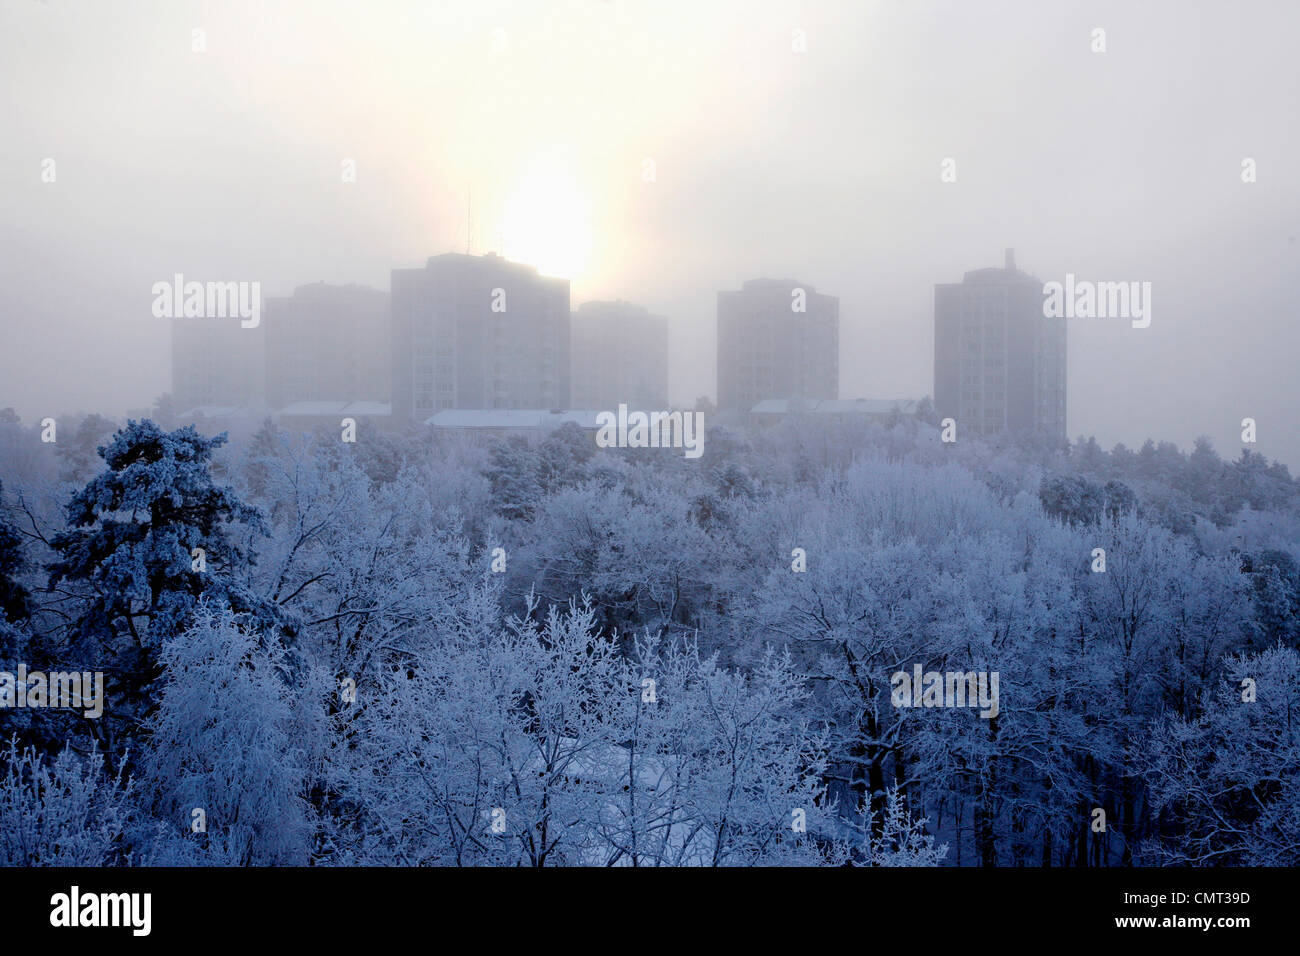 Trees covered by snow against buildings - Stock Image